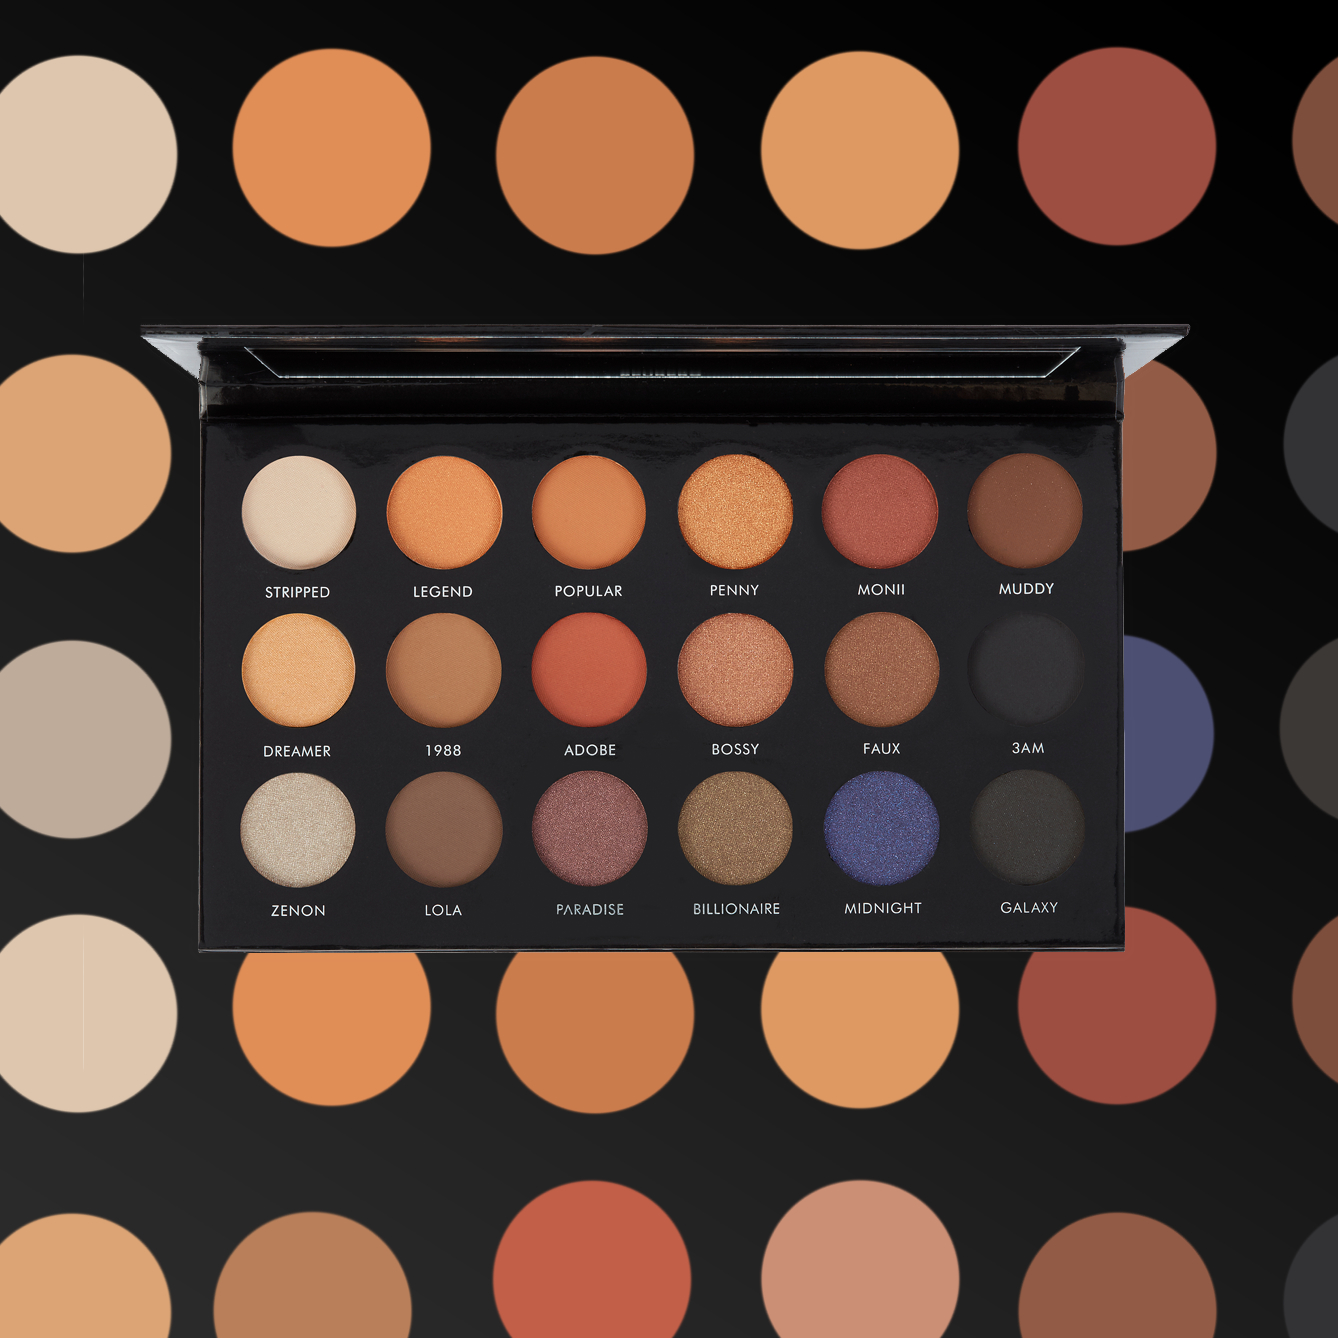 How to Use the New PÜR PRO X Etienne Ortega Palette